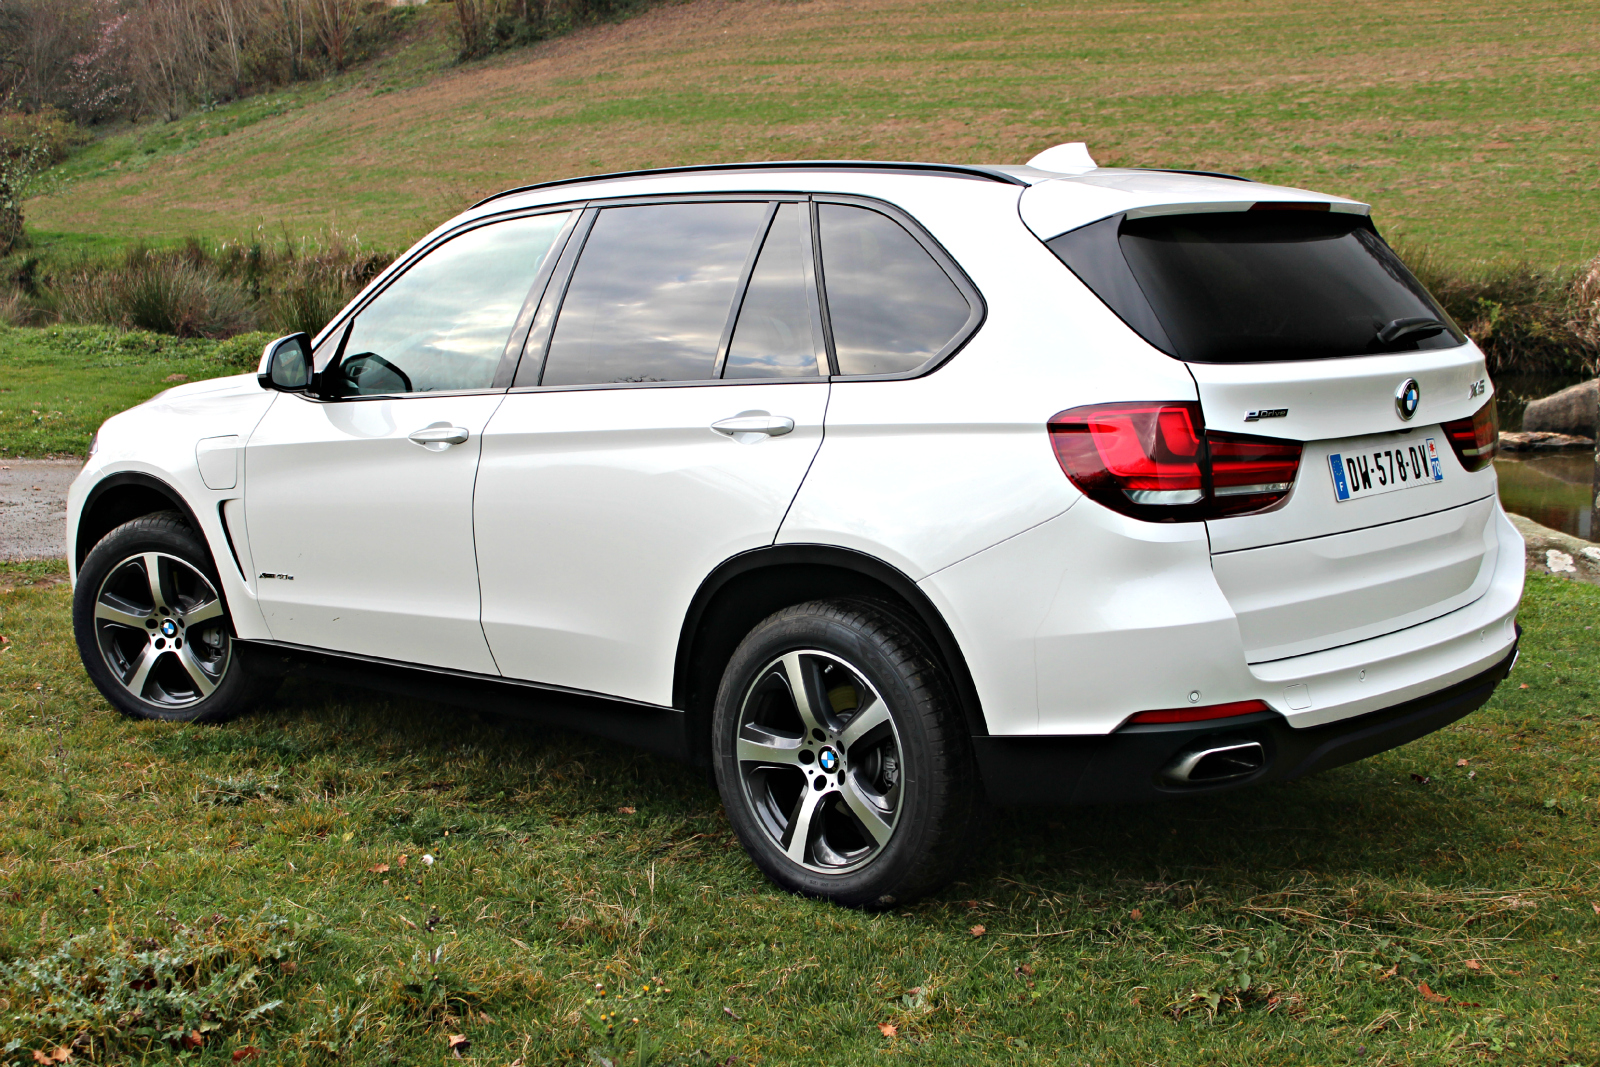 essai bmw x5 xdrive40e les 4x4 turbo essence ce n 39 est plus ce que c 39 tait. Black Bedroom Furniture Sets. Home Design Ideas